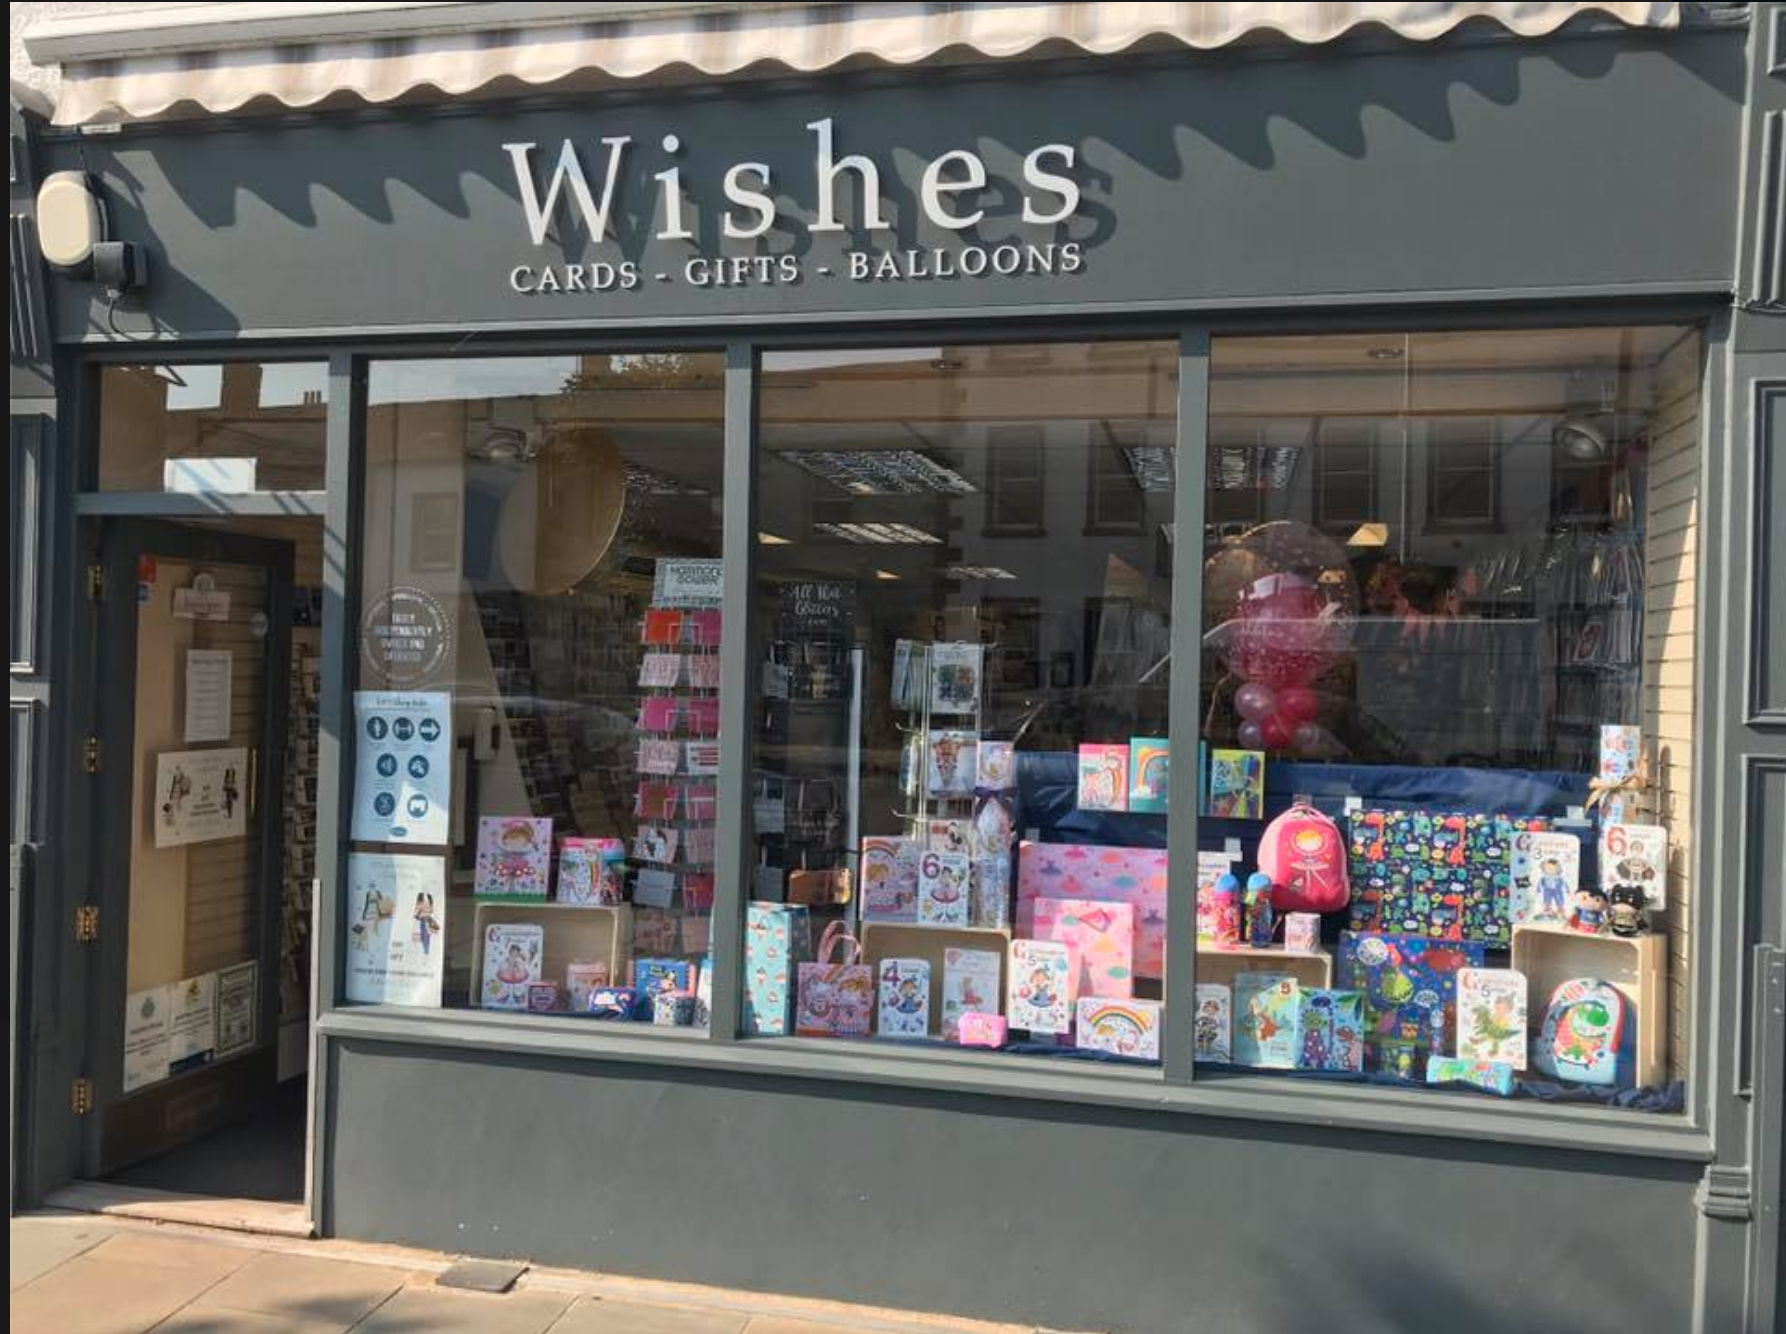 Above: Wishes has an ever changing window display to attract customers' interest.